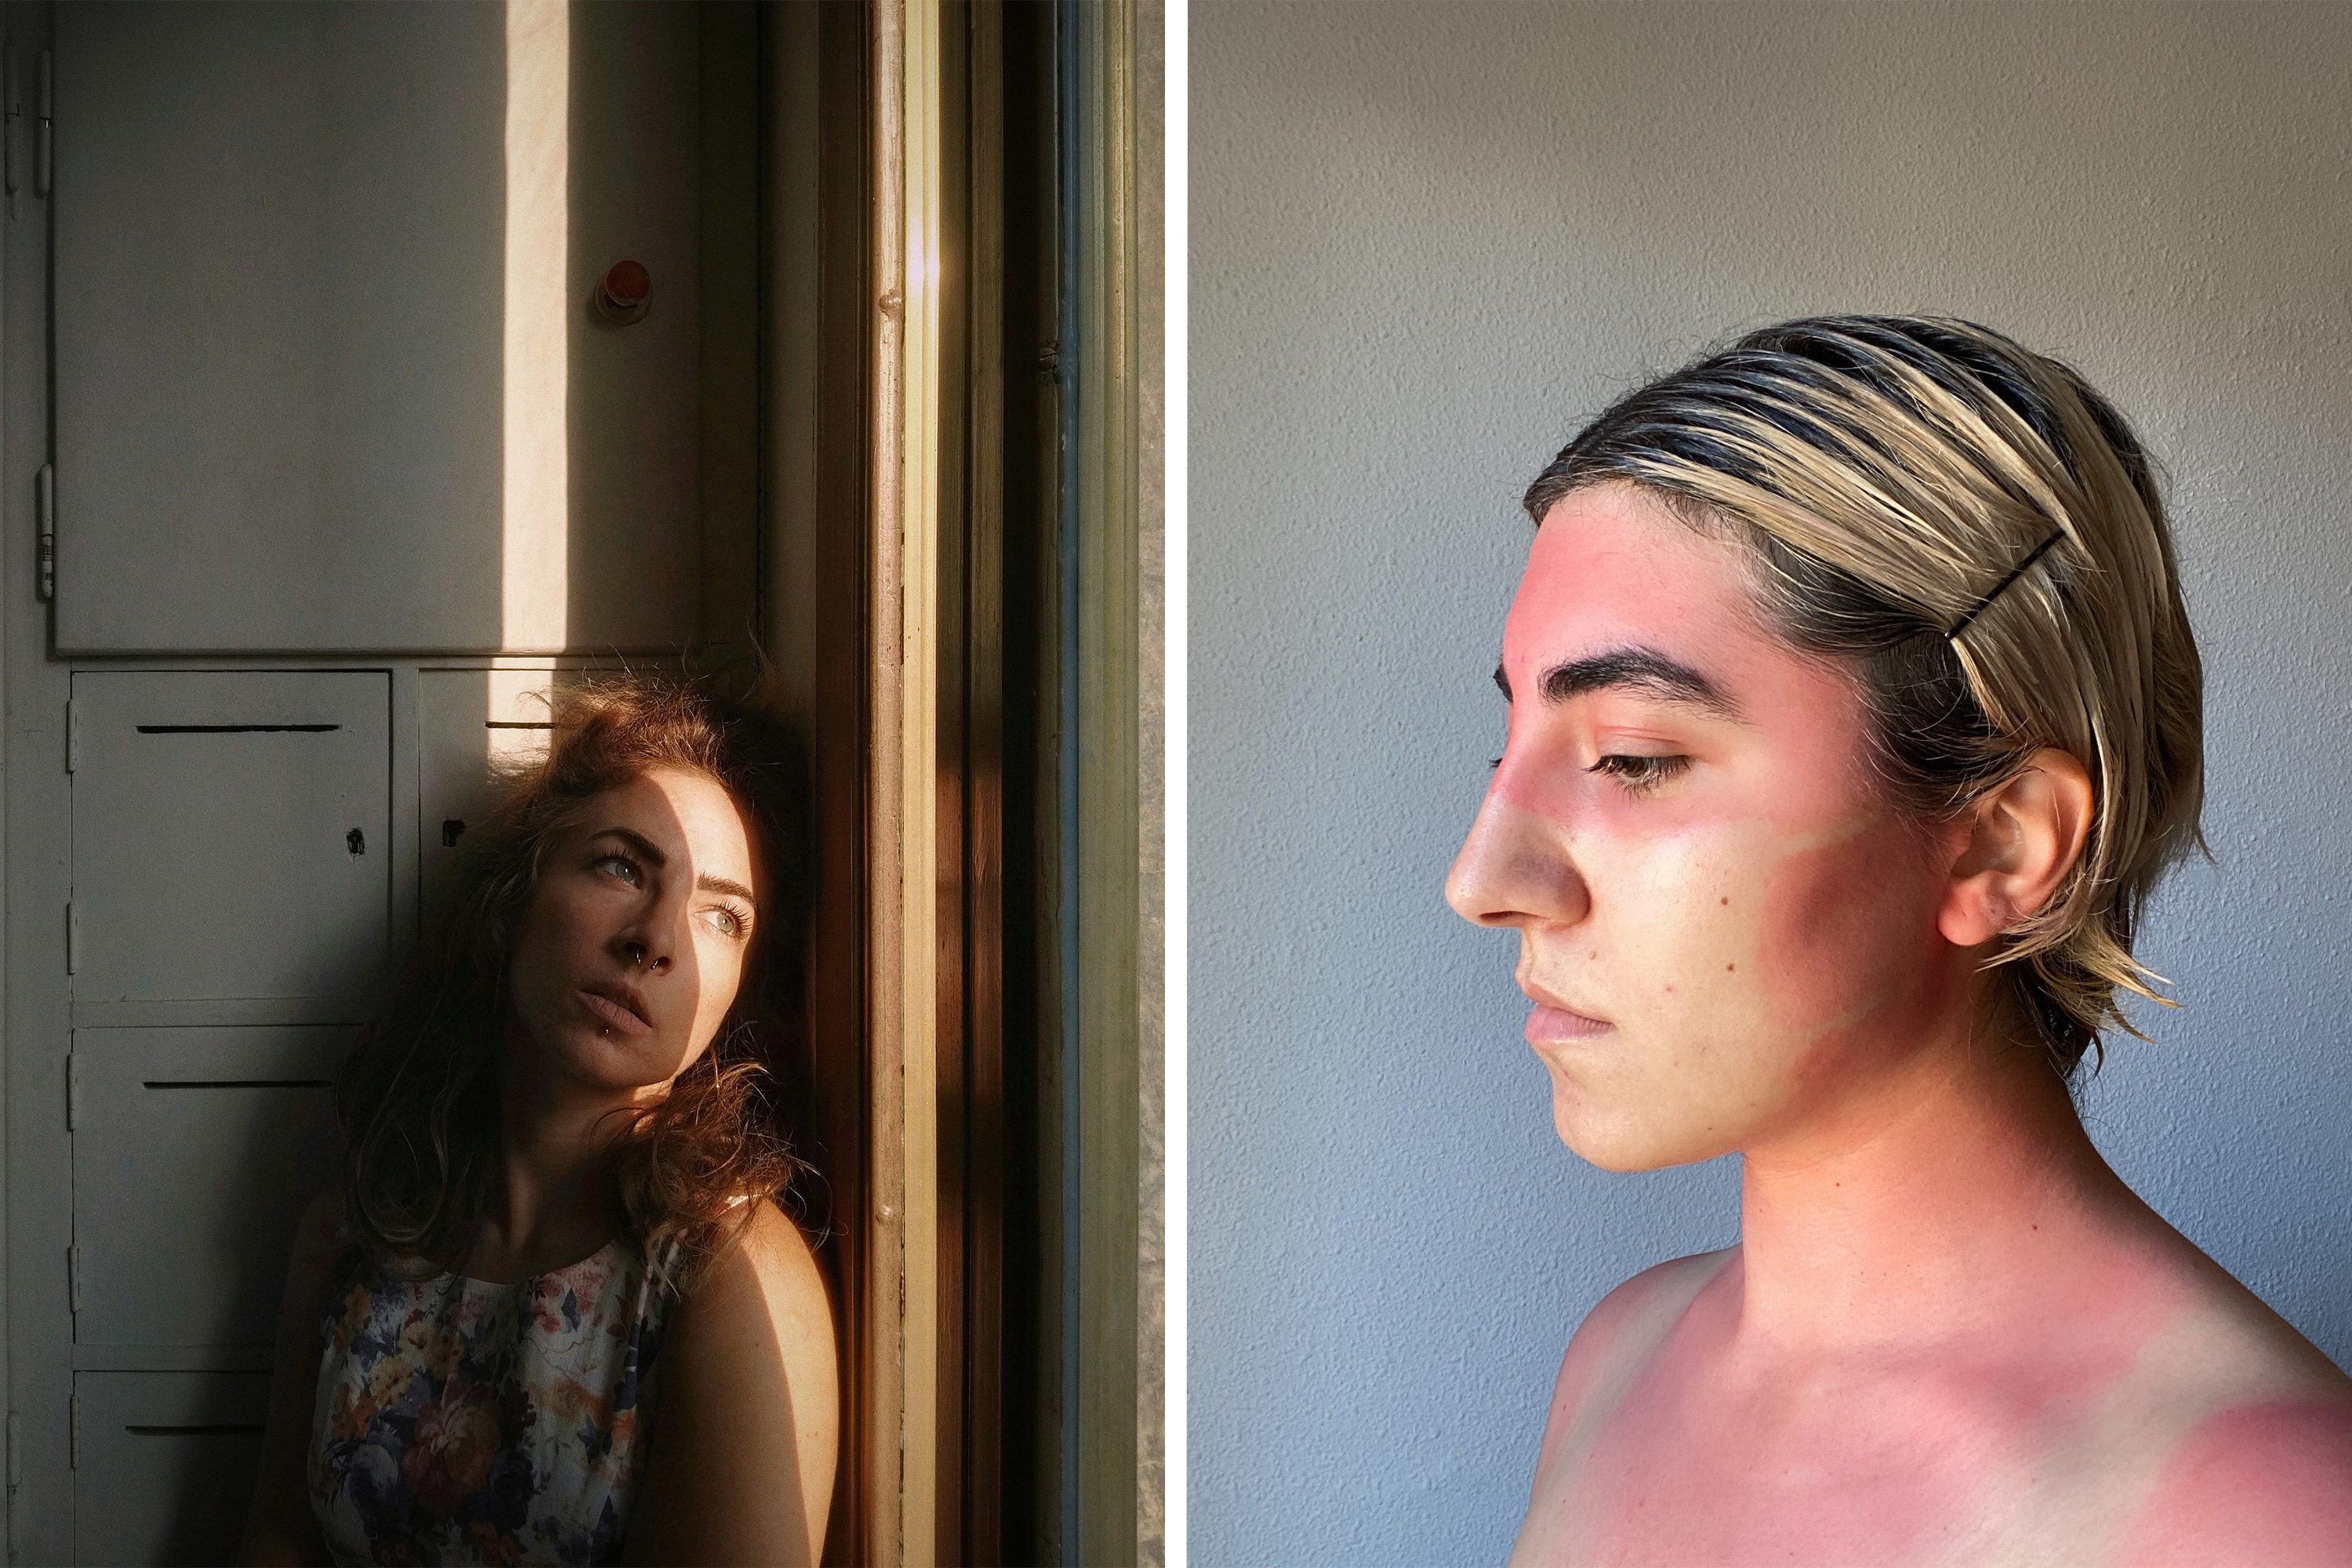 Two side-by-side images show a woman looking out the window with a strip of light on her face, and a girl with a sunburn showing mask lines